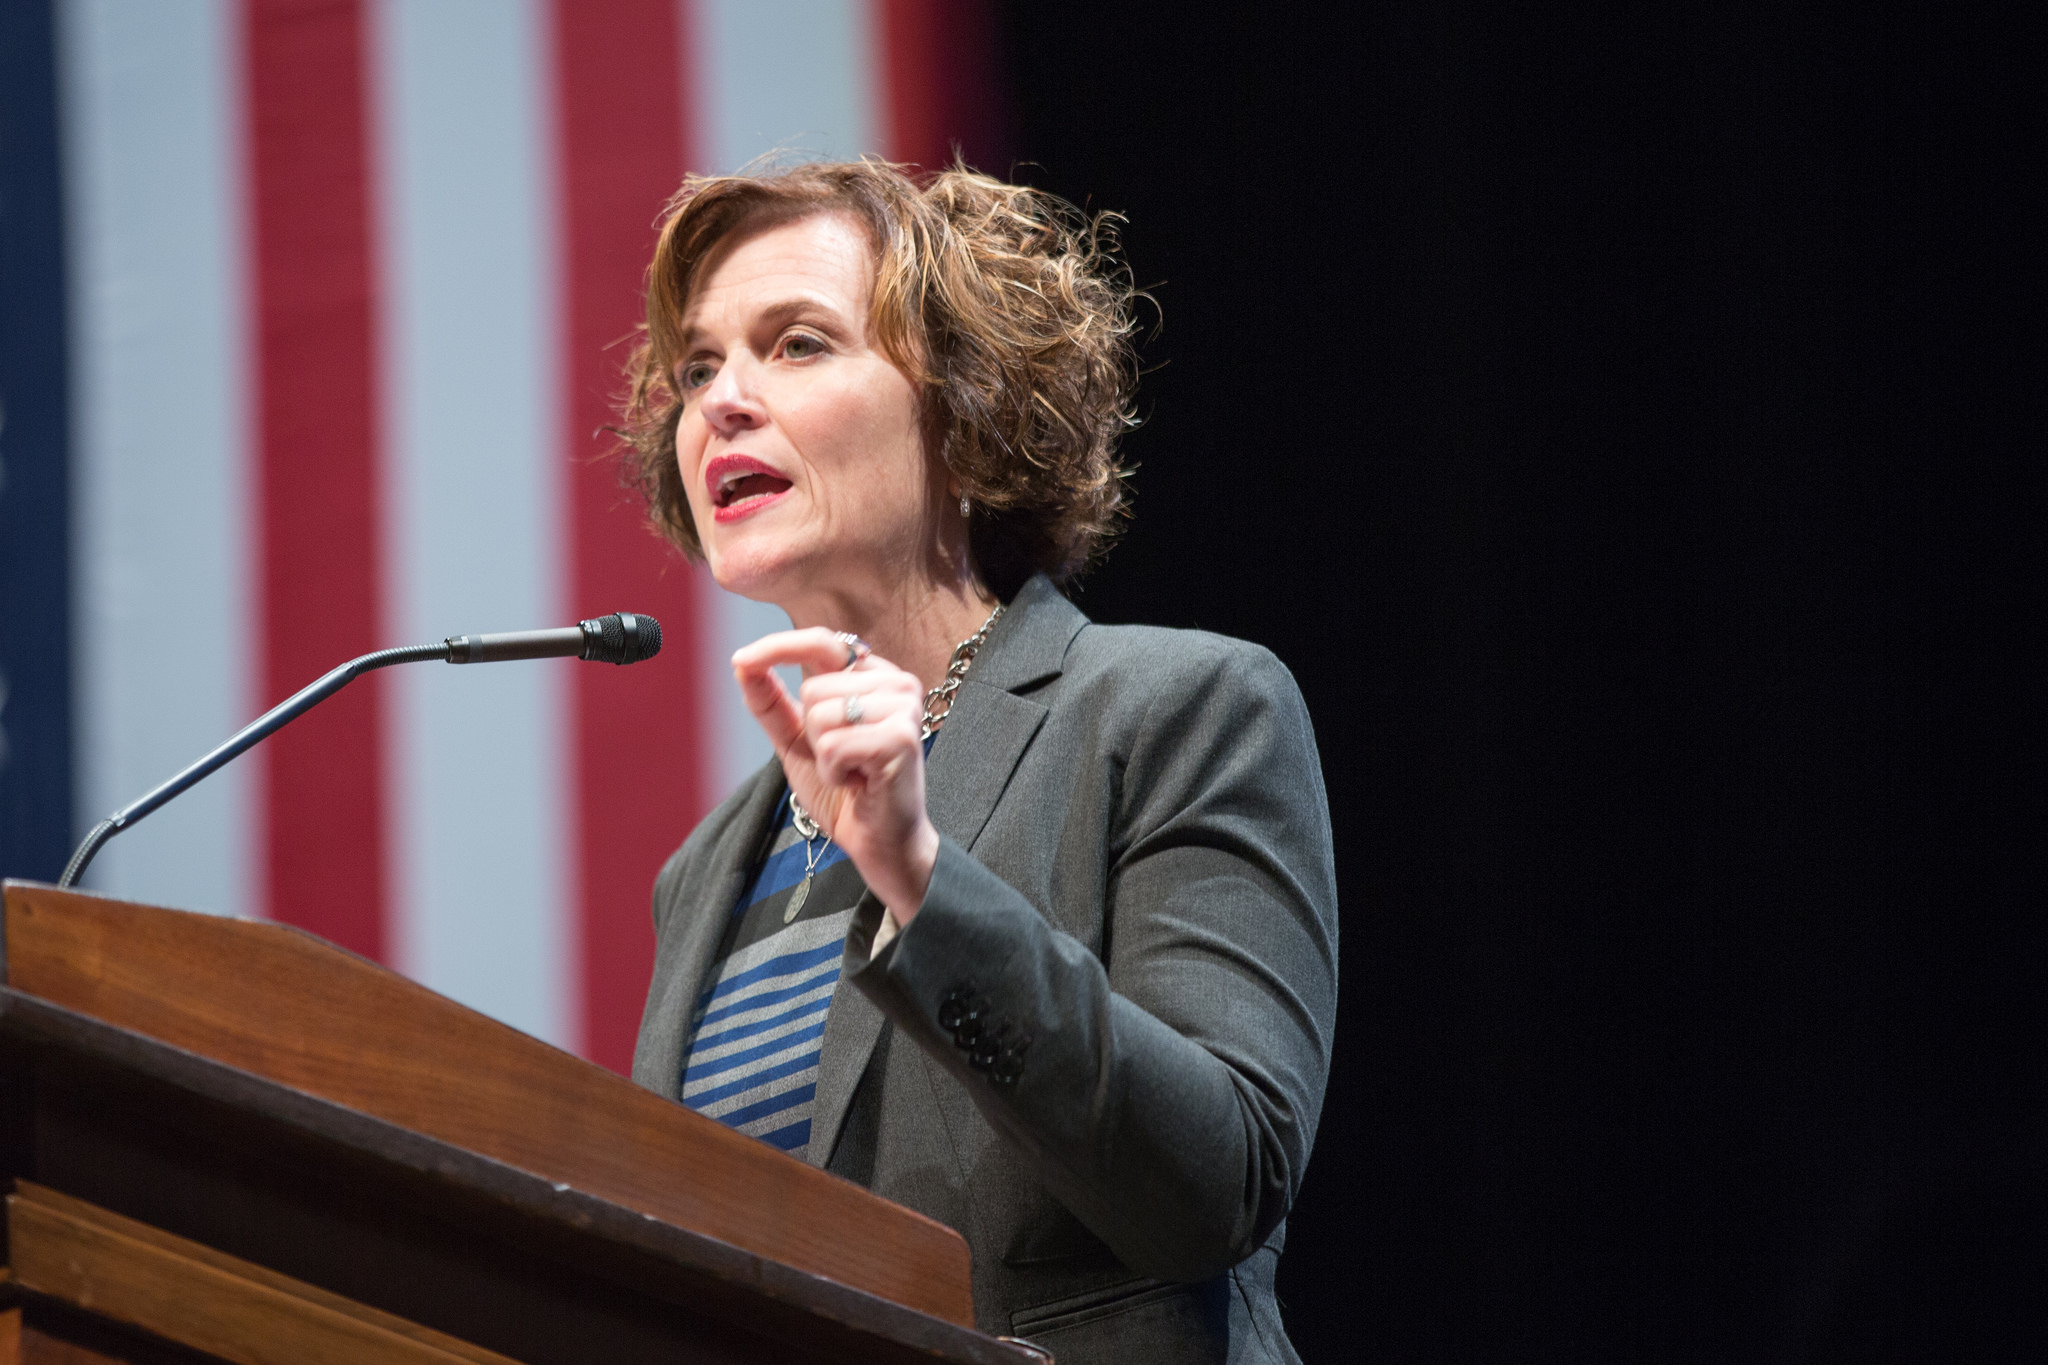 Betsy Hodges, speaking as Mayor of Minneapolis at a Clinton campaign event in Minneapolis, October 2016